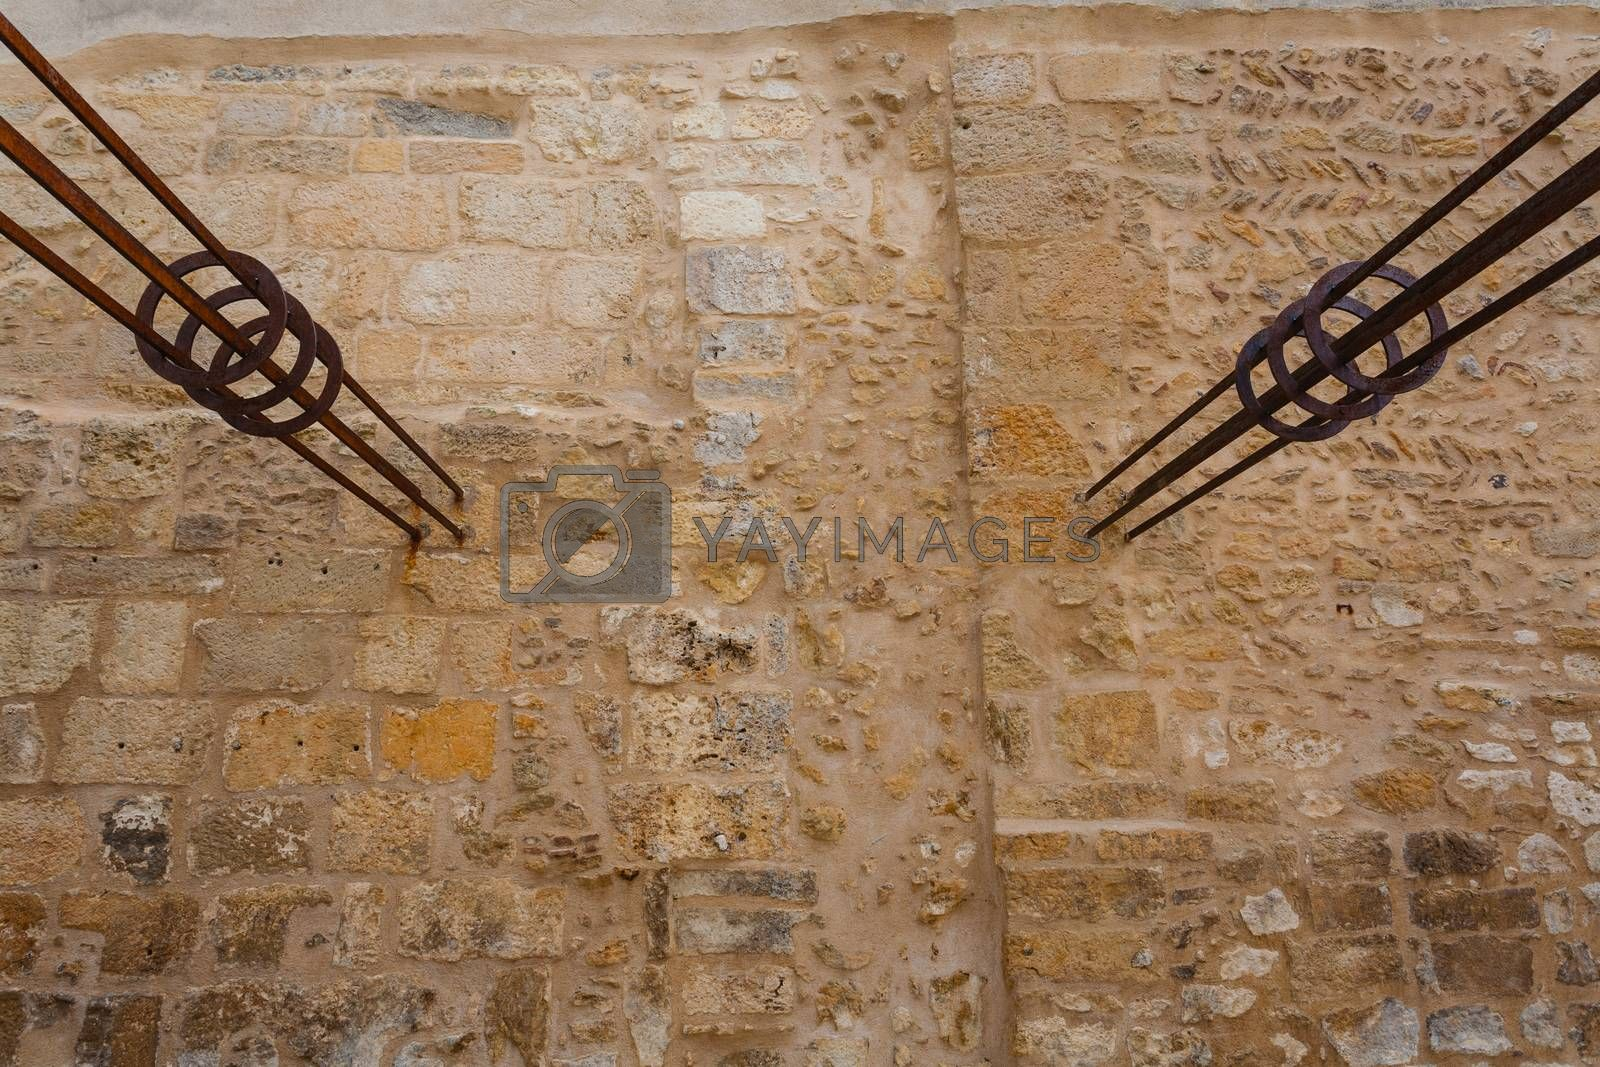 Two forged pieces of iron hammered in a stoned wall in a park in the city of Perigueux in France